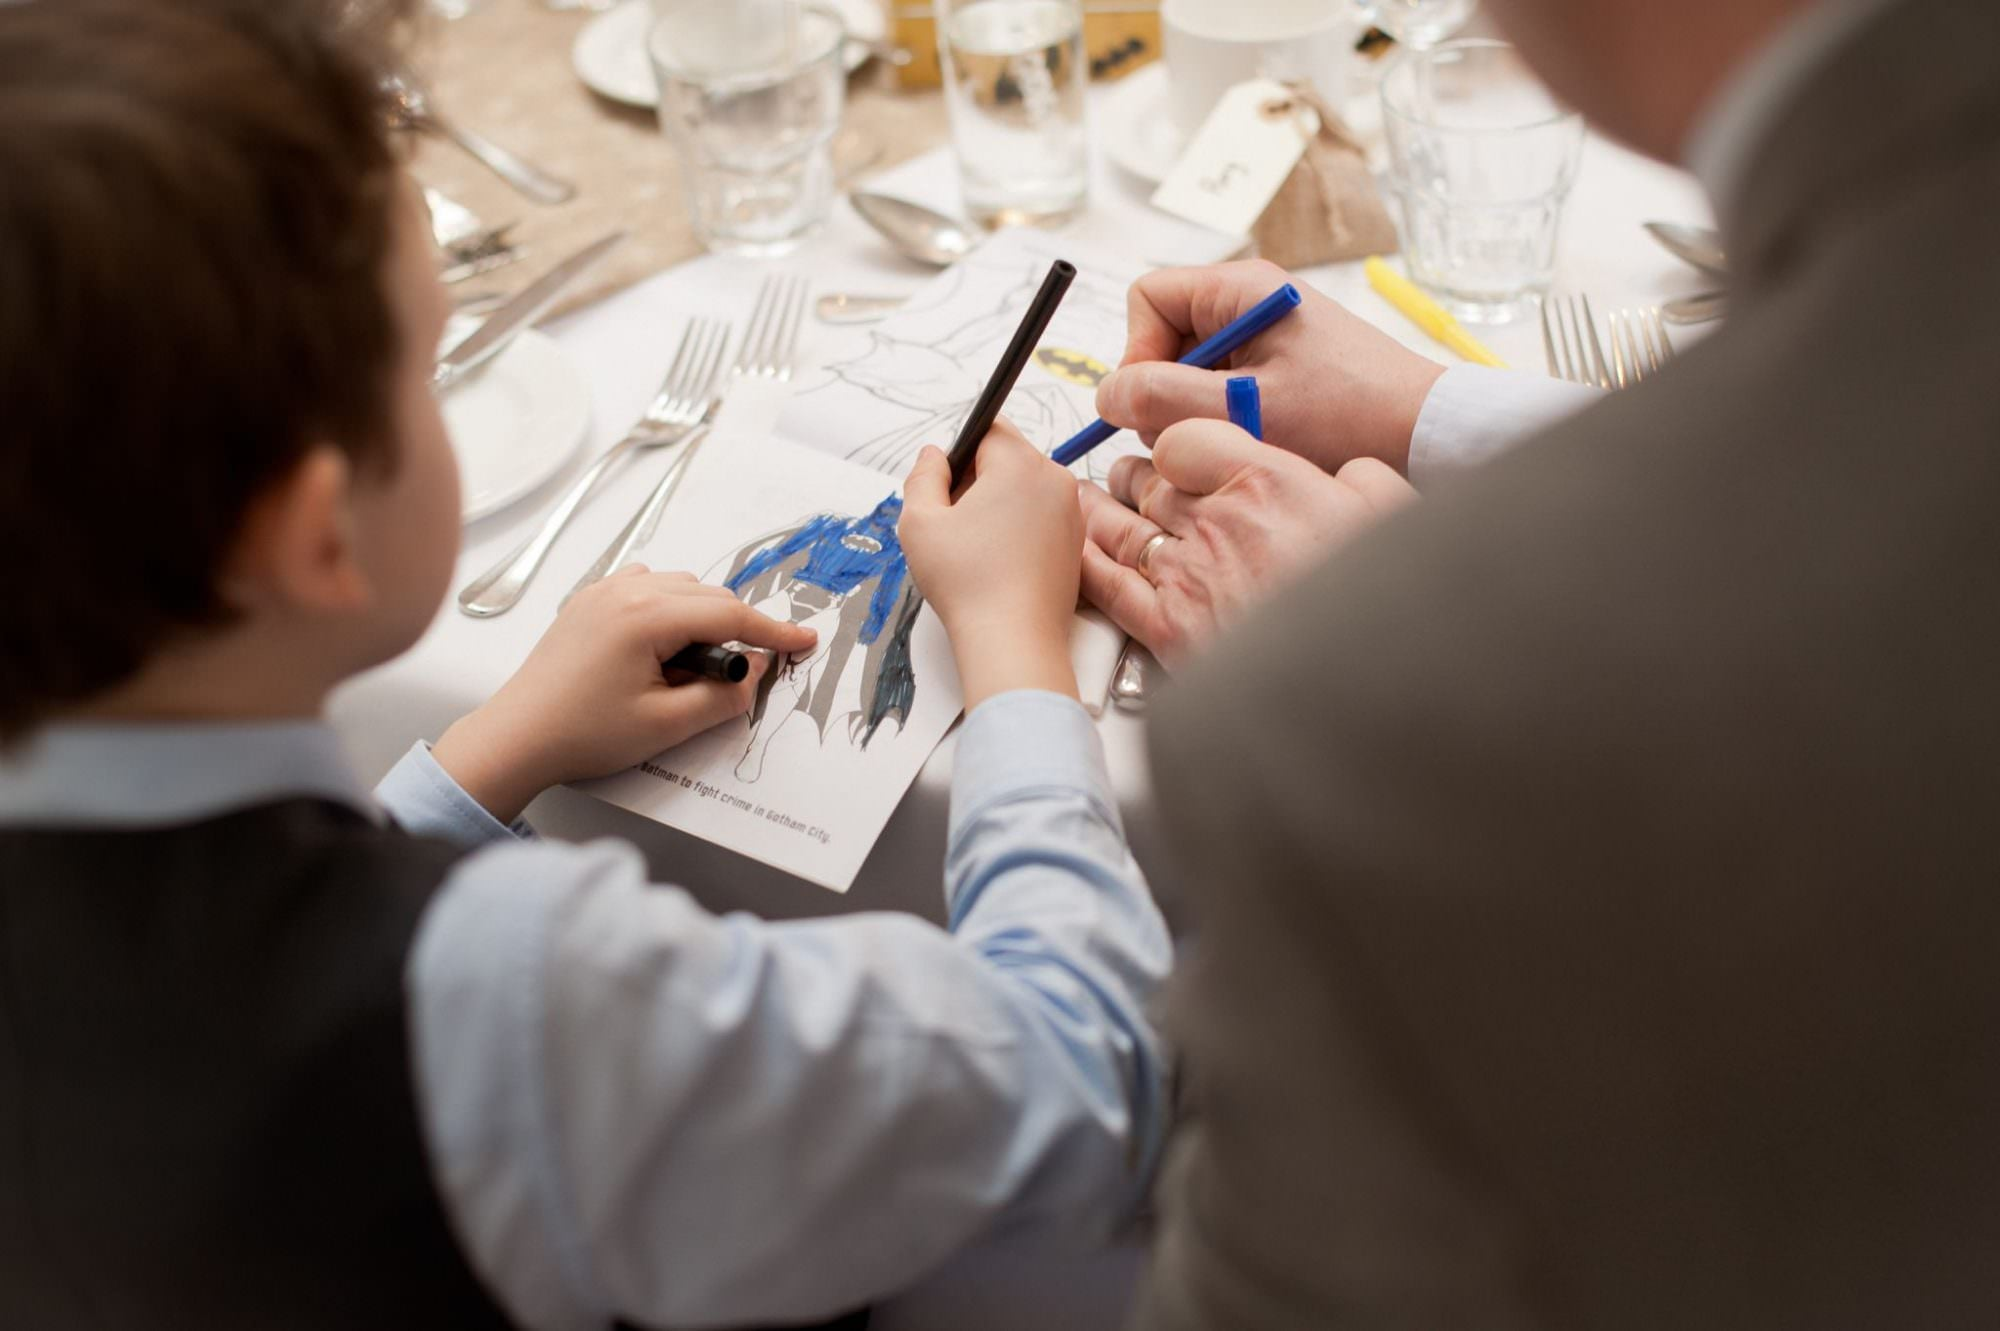 Children Colouring Book at Wedding